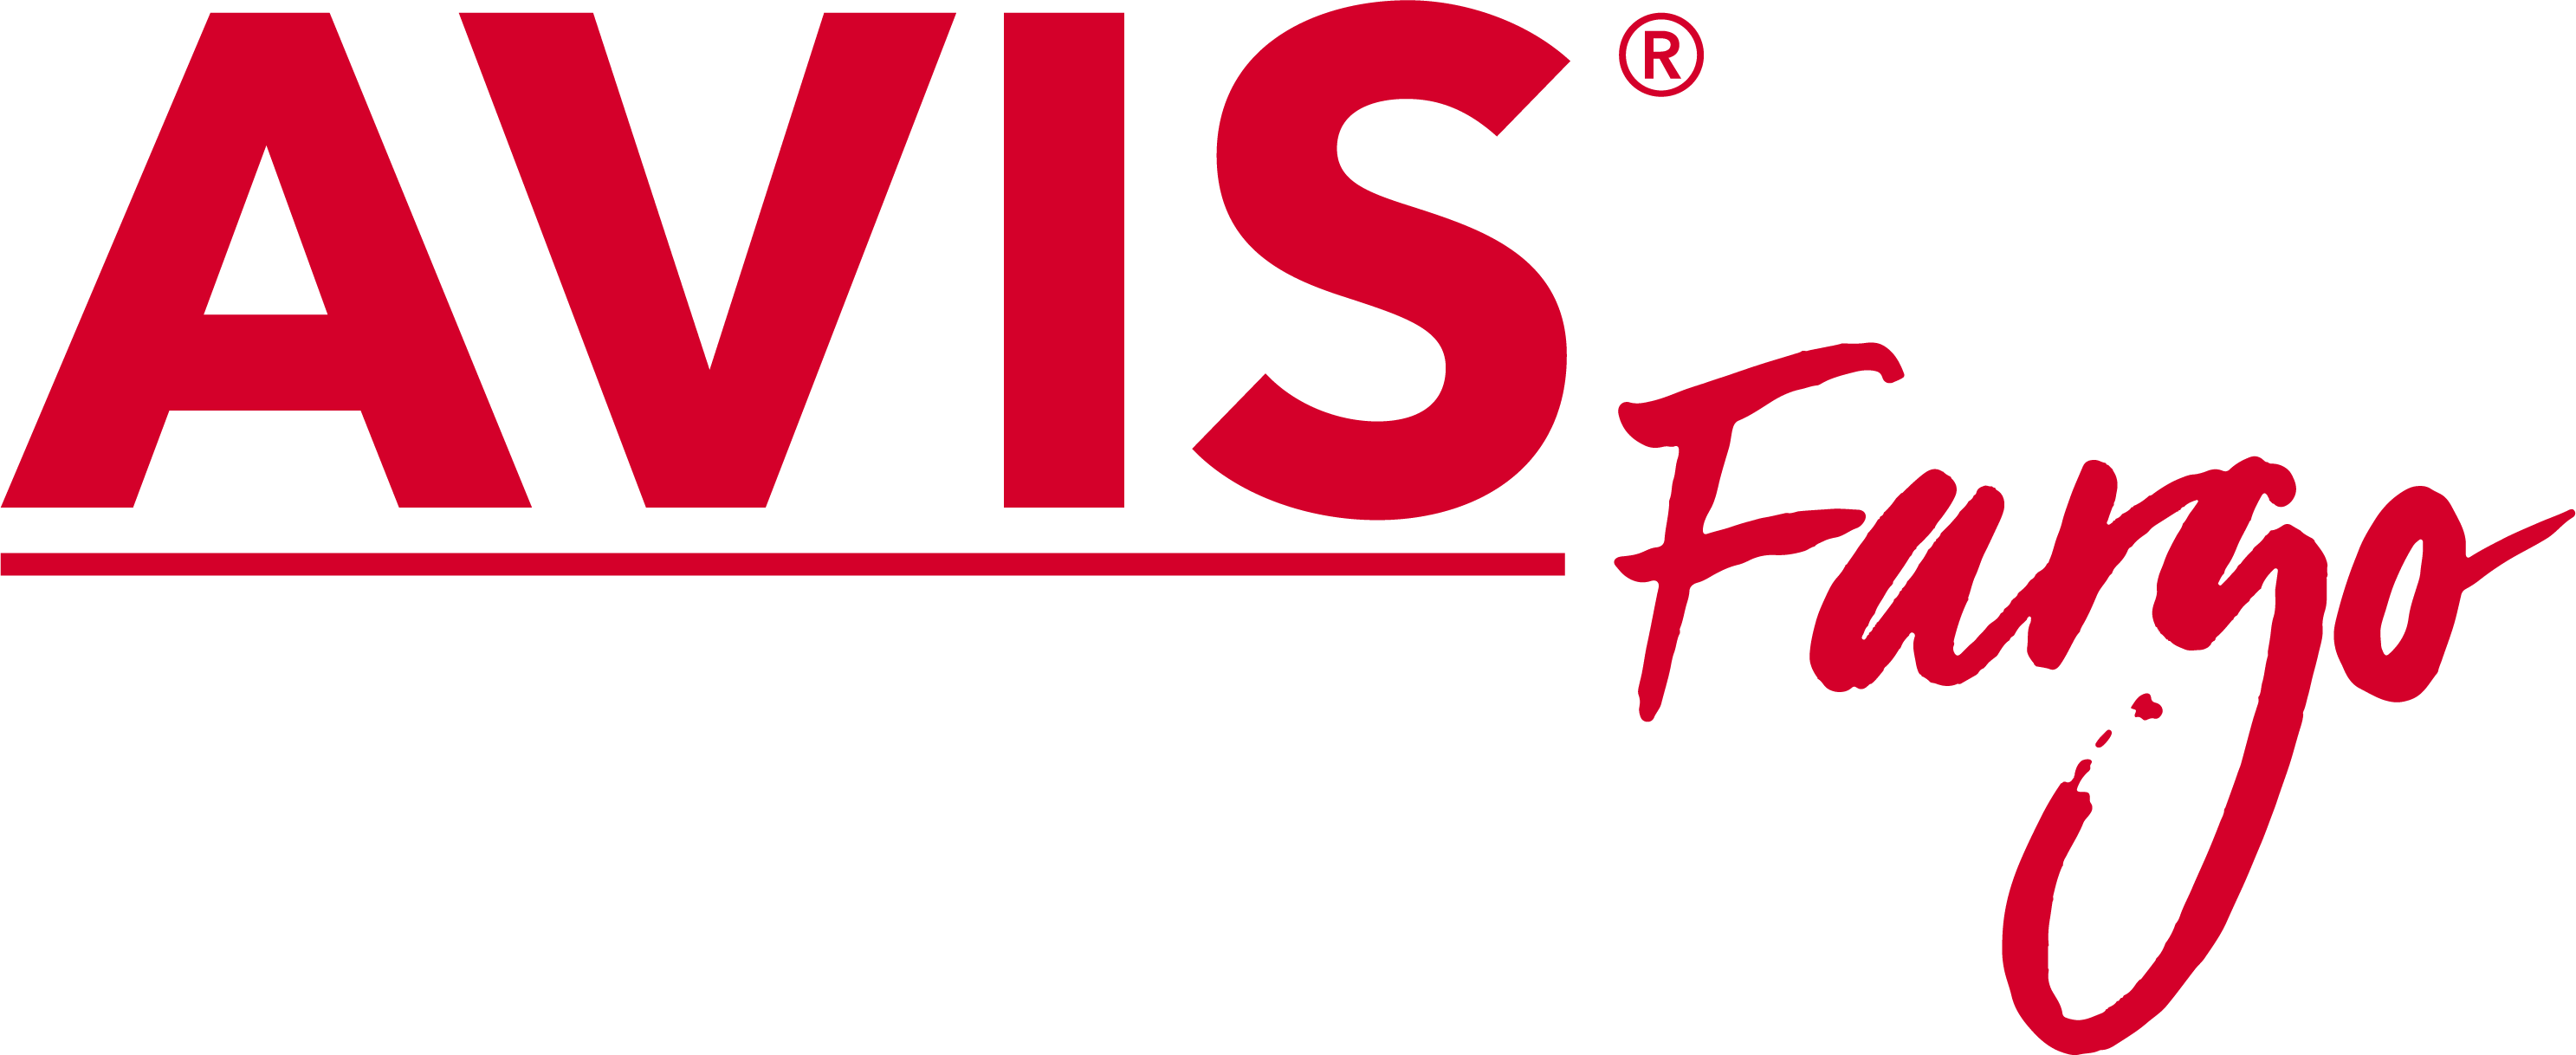 Avis Rent a Car Leaderboard Sponsor